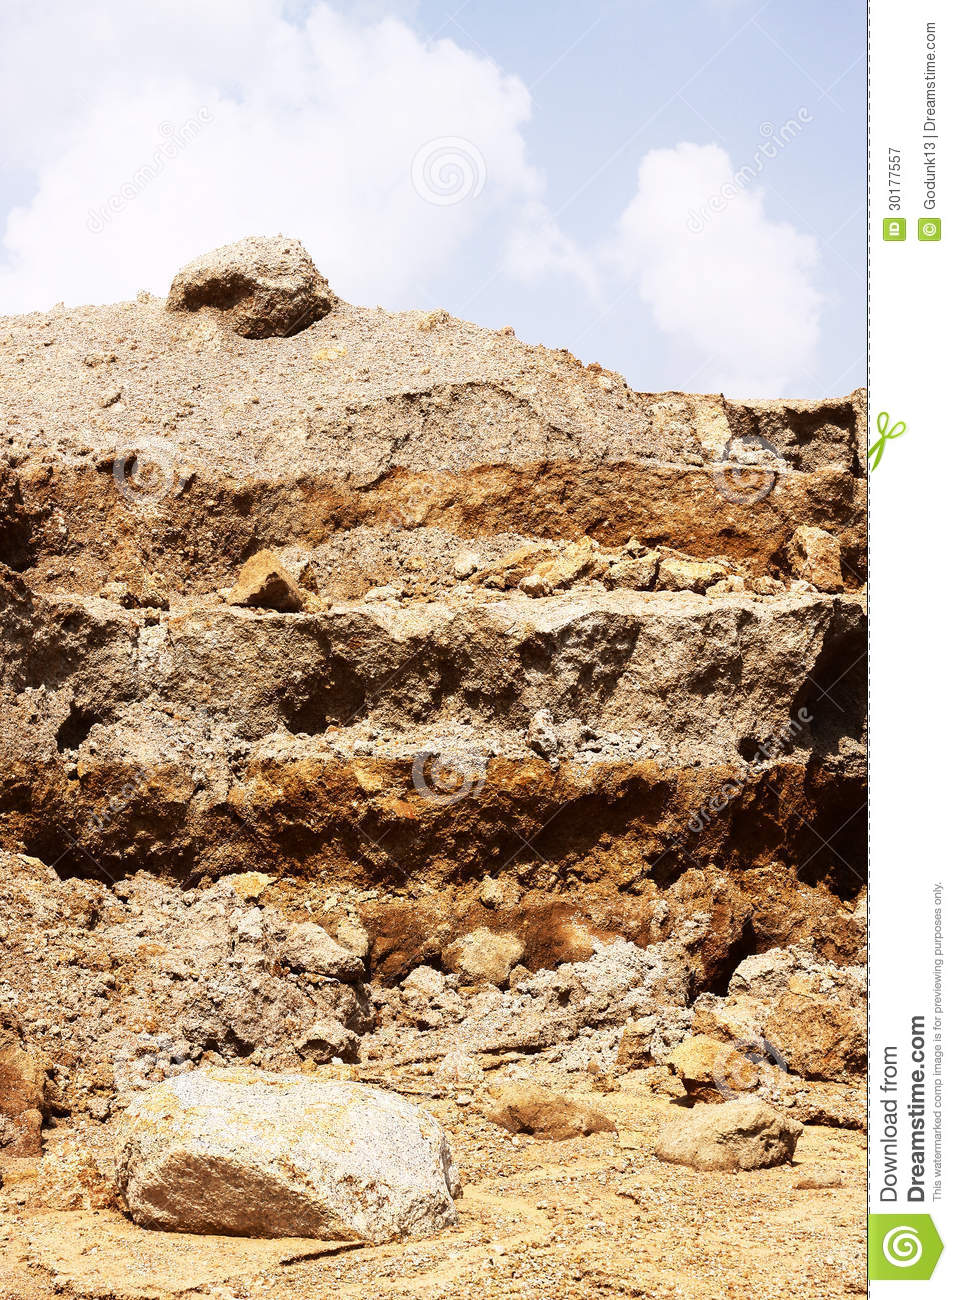 Construction Site Soil : Layer of soil royalty free stock photography image